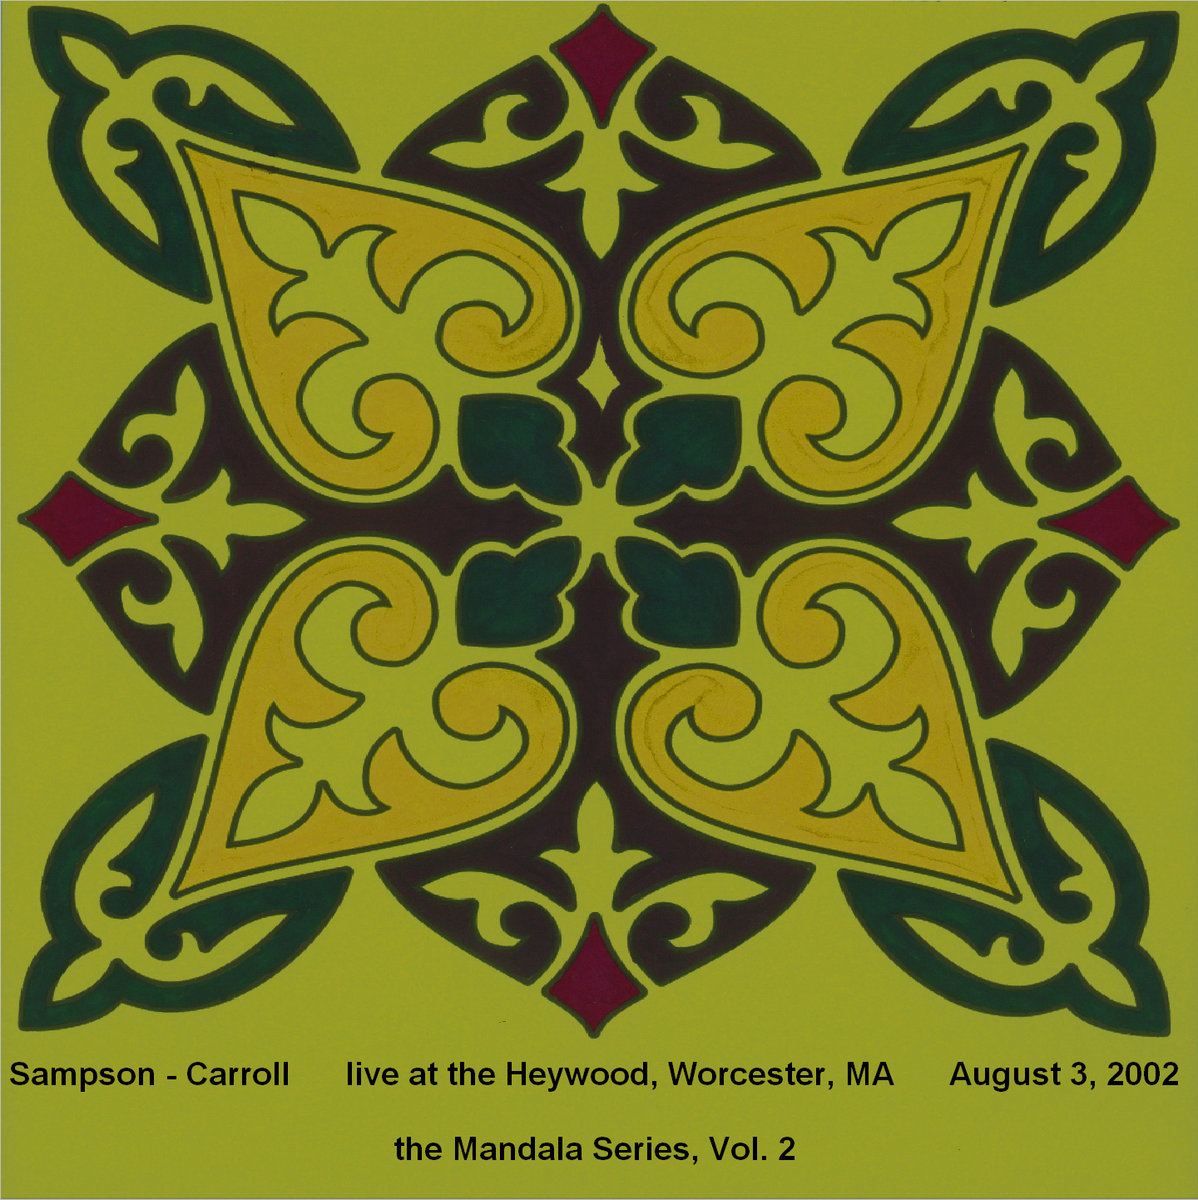 Sampson - Carroll: Heywood Part - Mandala Vol. 2